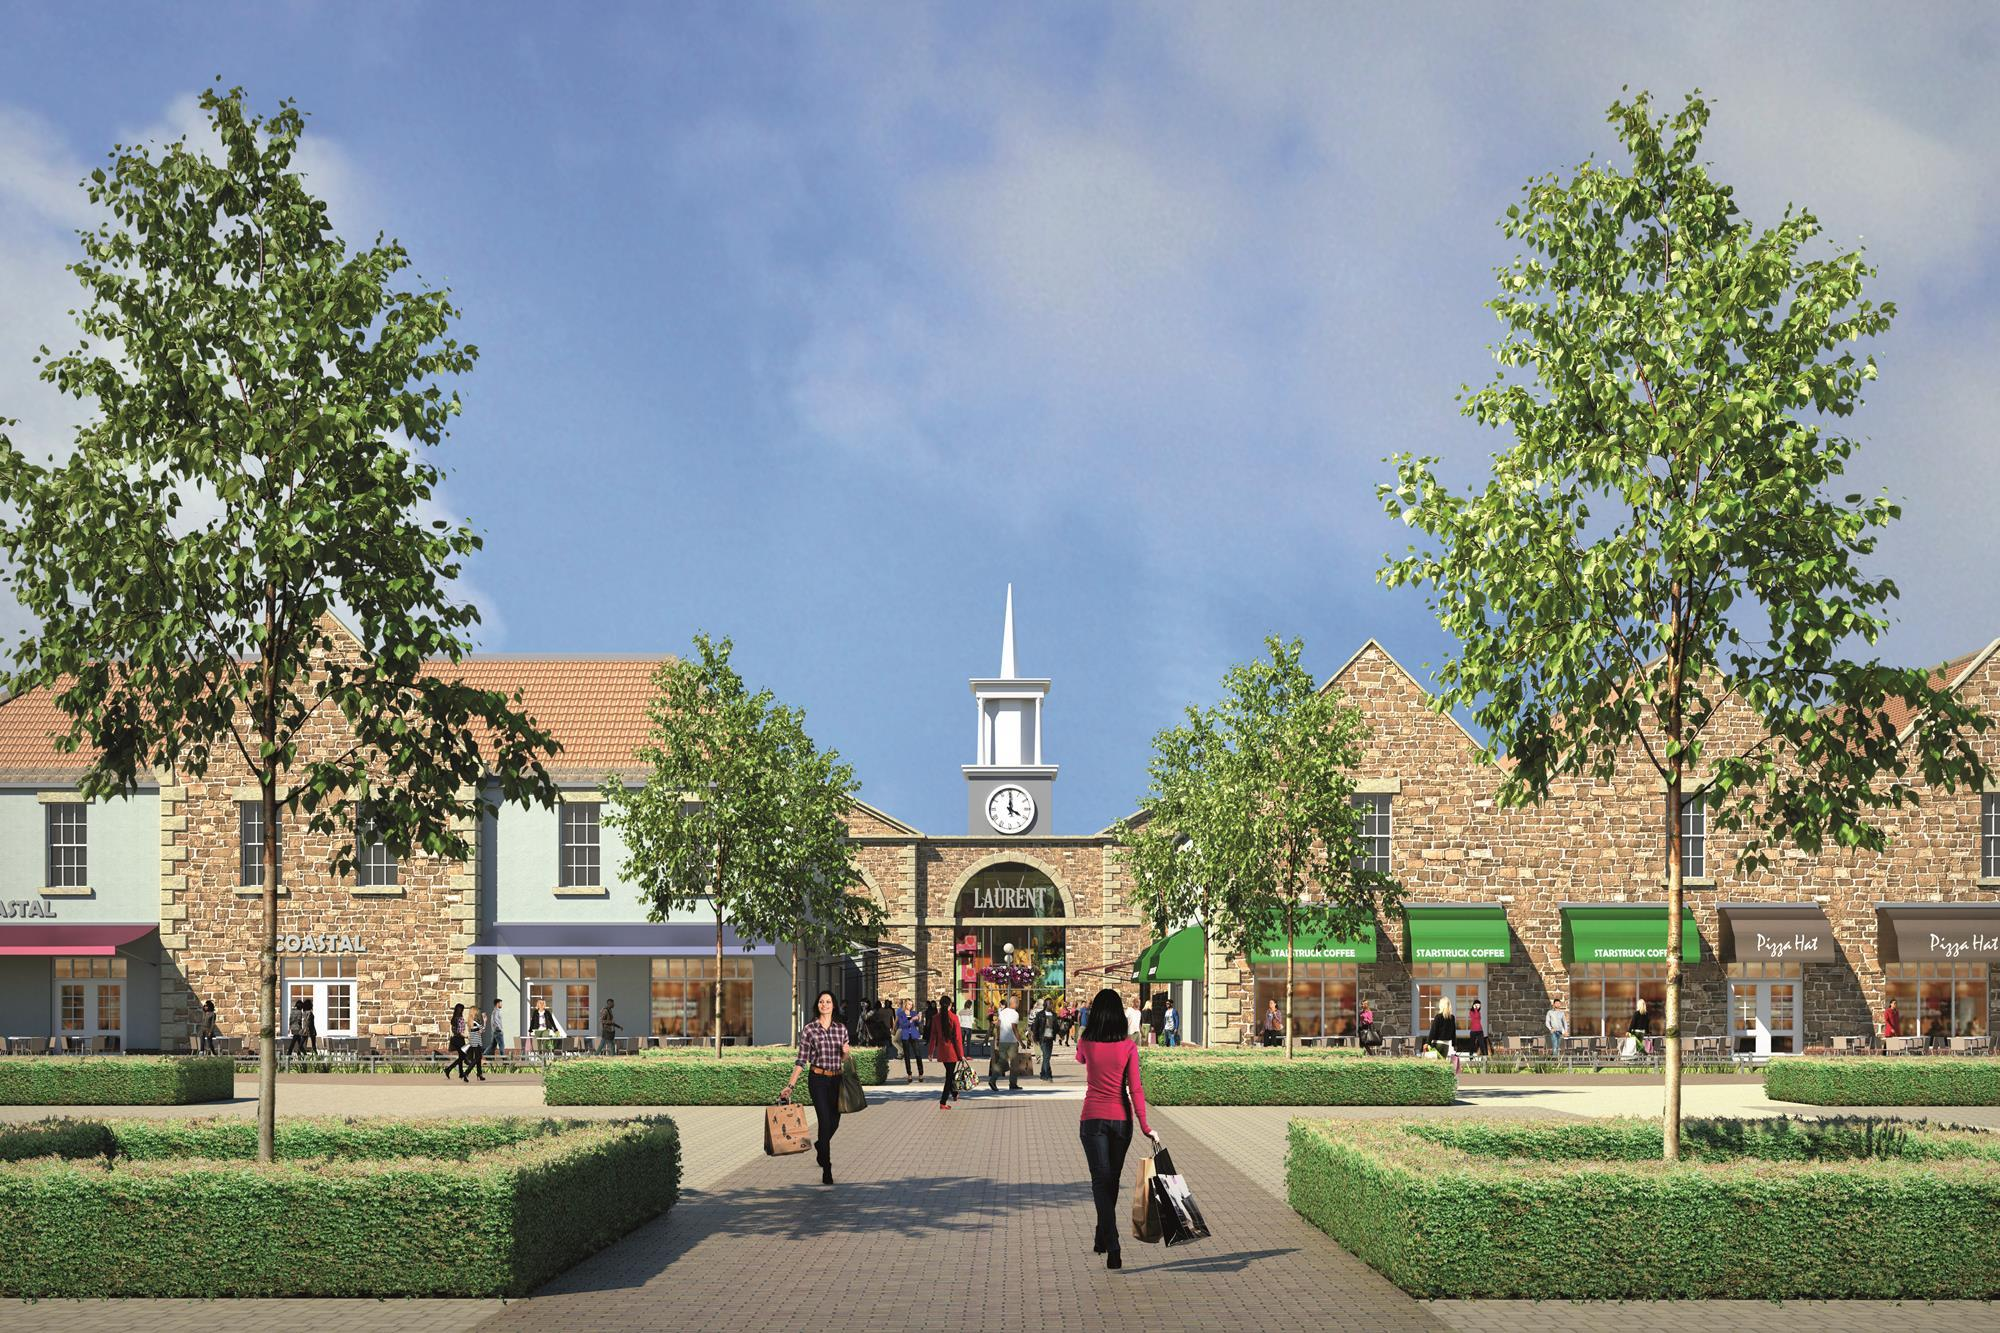 Yorkshire retail outlet scheme wins pre-lets for 50% of space | News